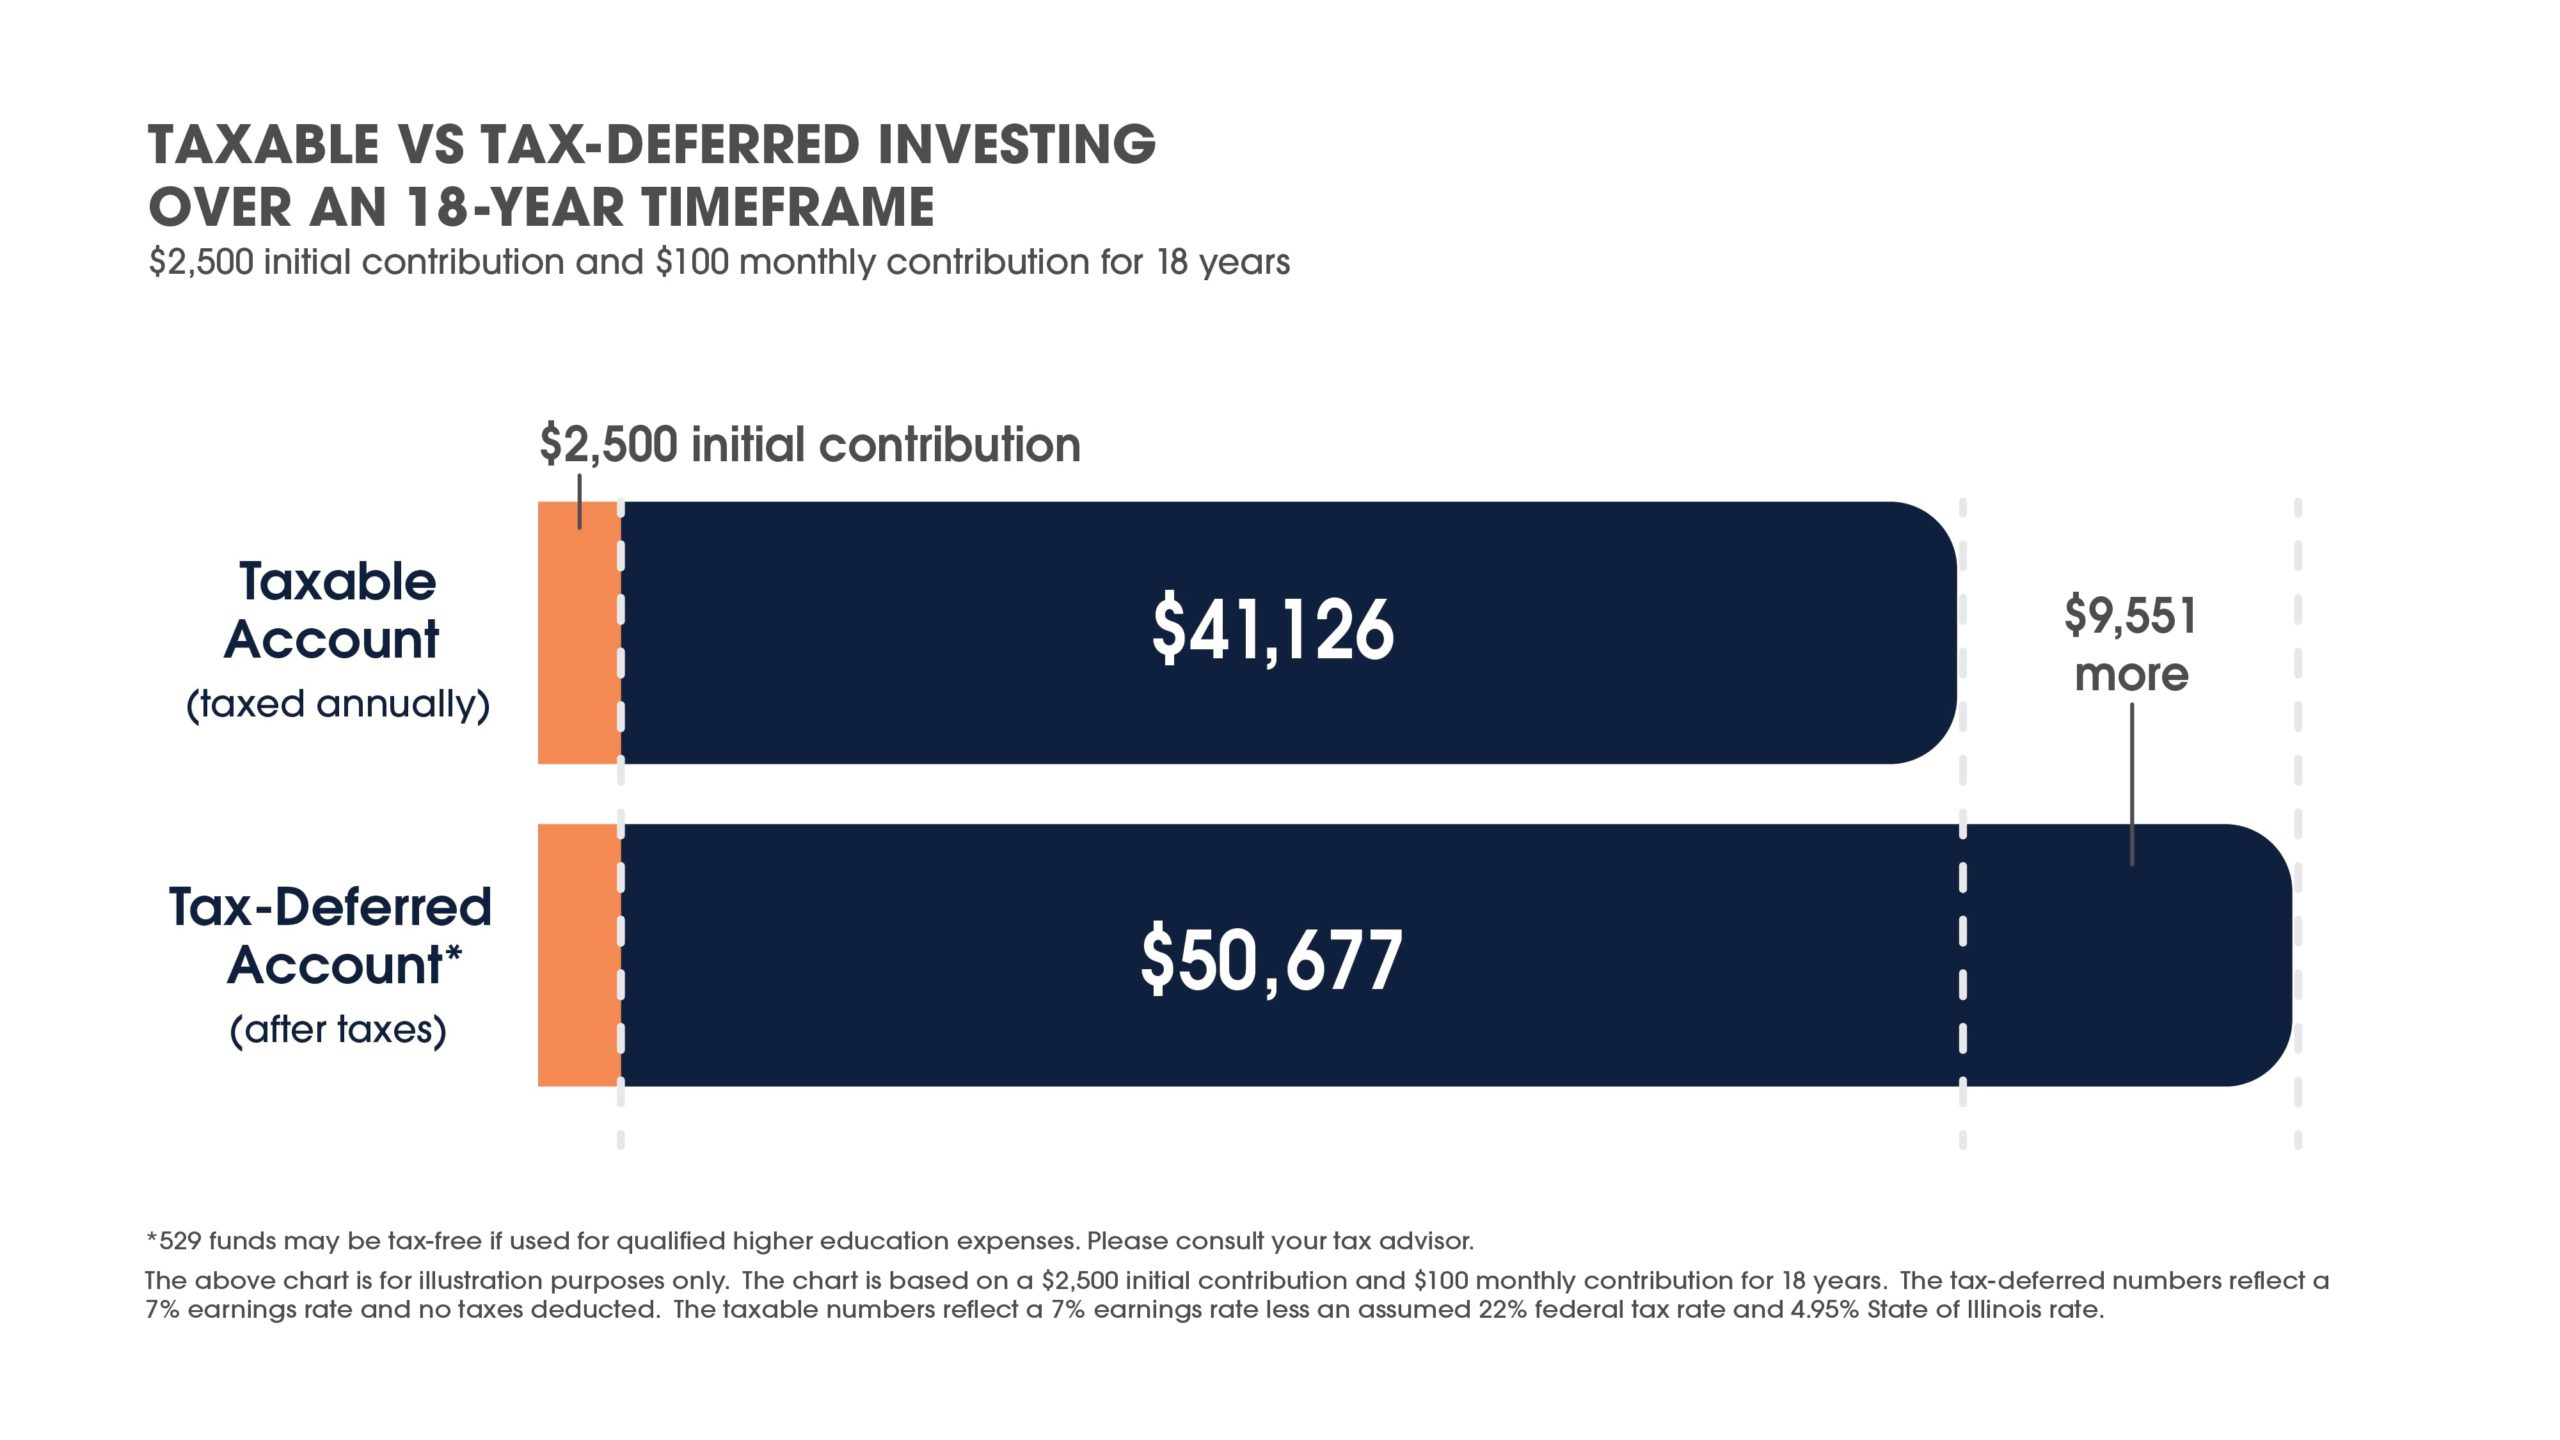 Taxable vs Tax-Deferred investing over an 18 year time frame graph - click link for more information